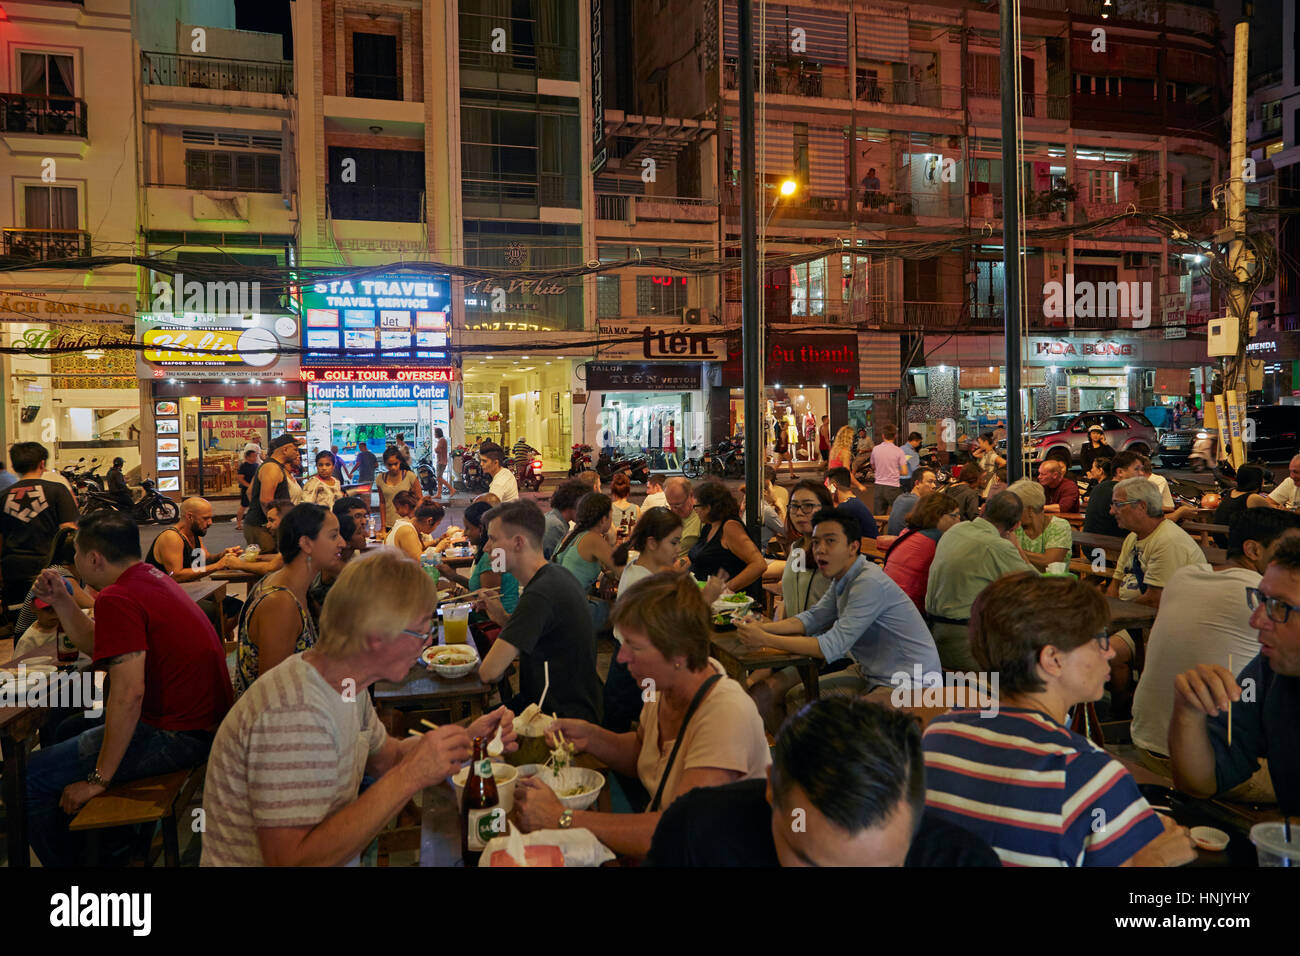 Ben Thanh Street Food Market, Ho Chi Minh City (Saigon), Vietnam - Stock Image